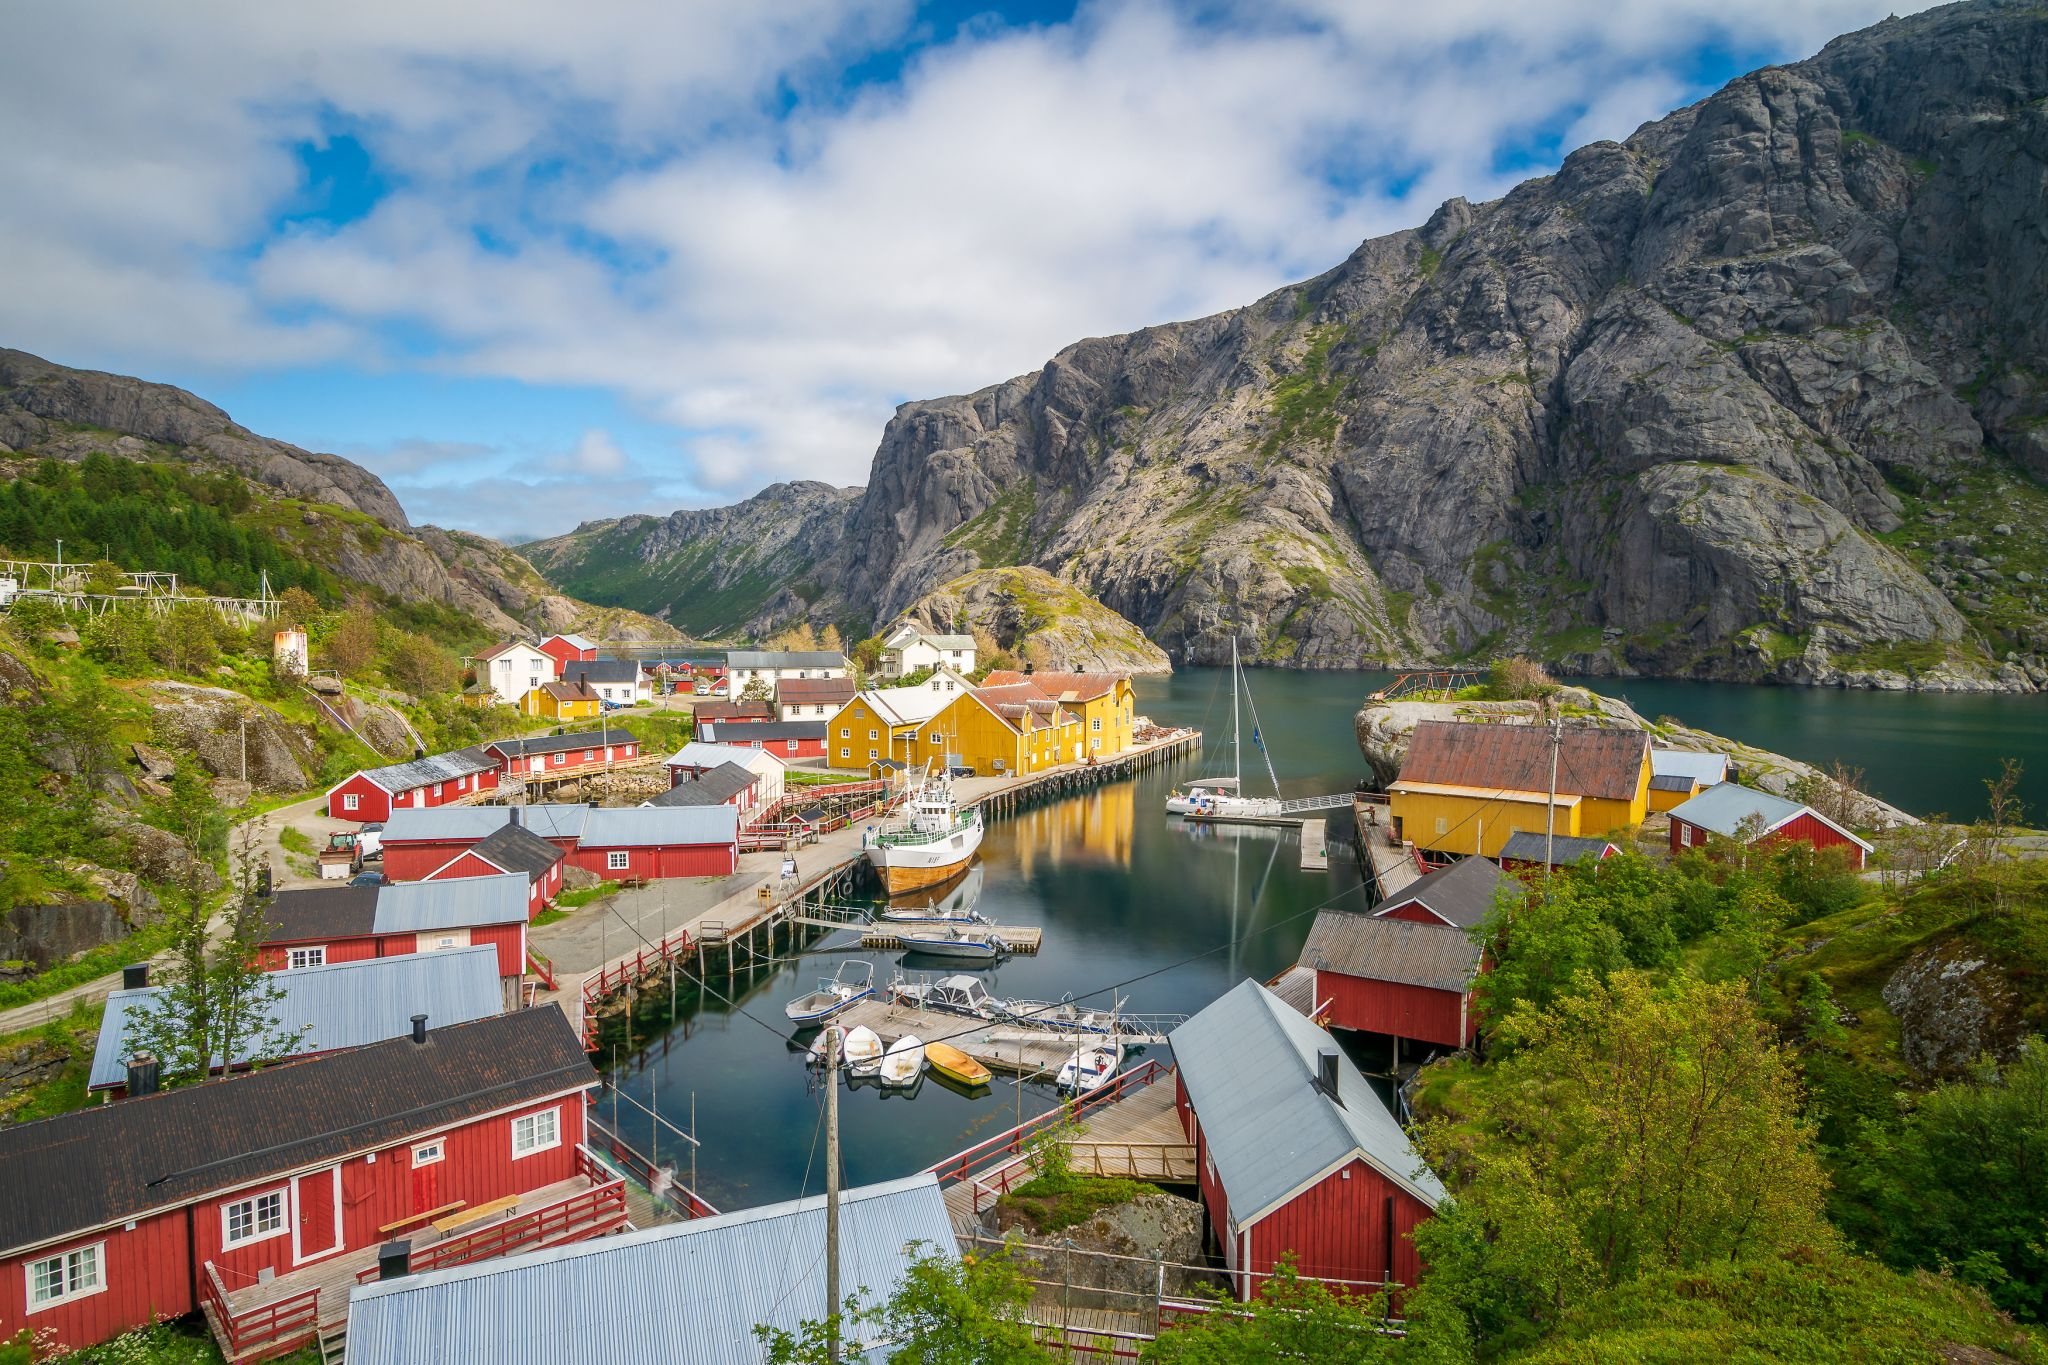 the fish village of Nusfjord, Norway